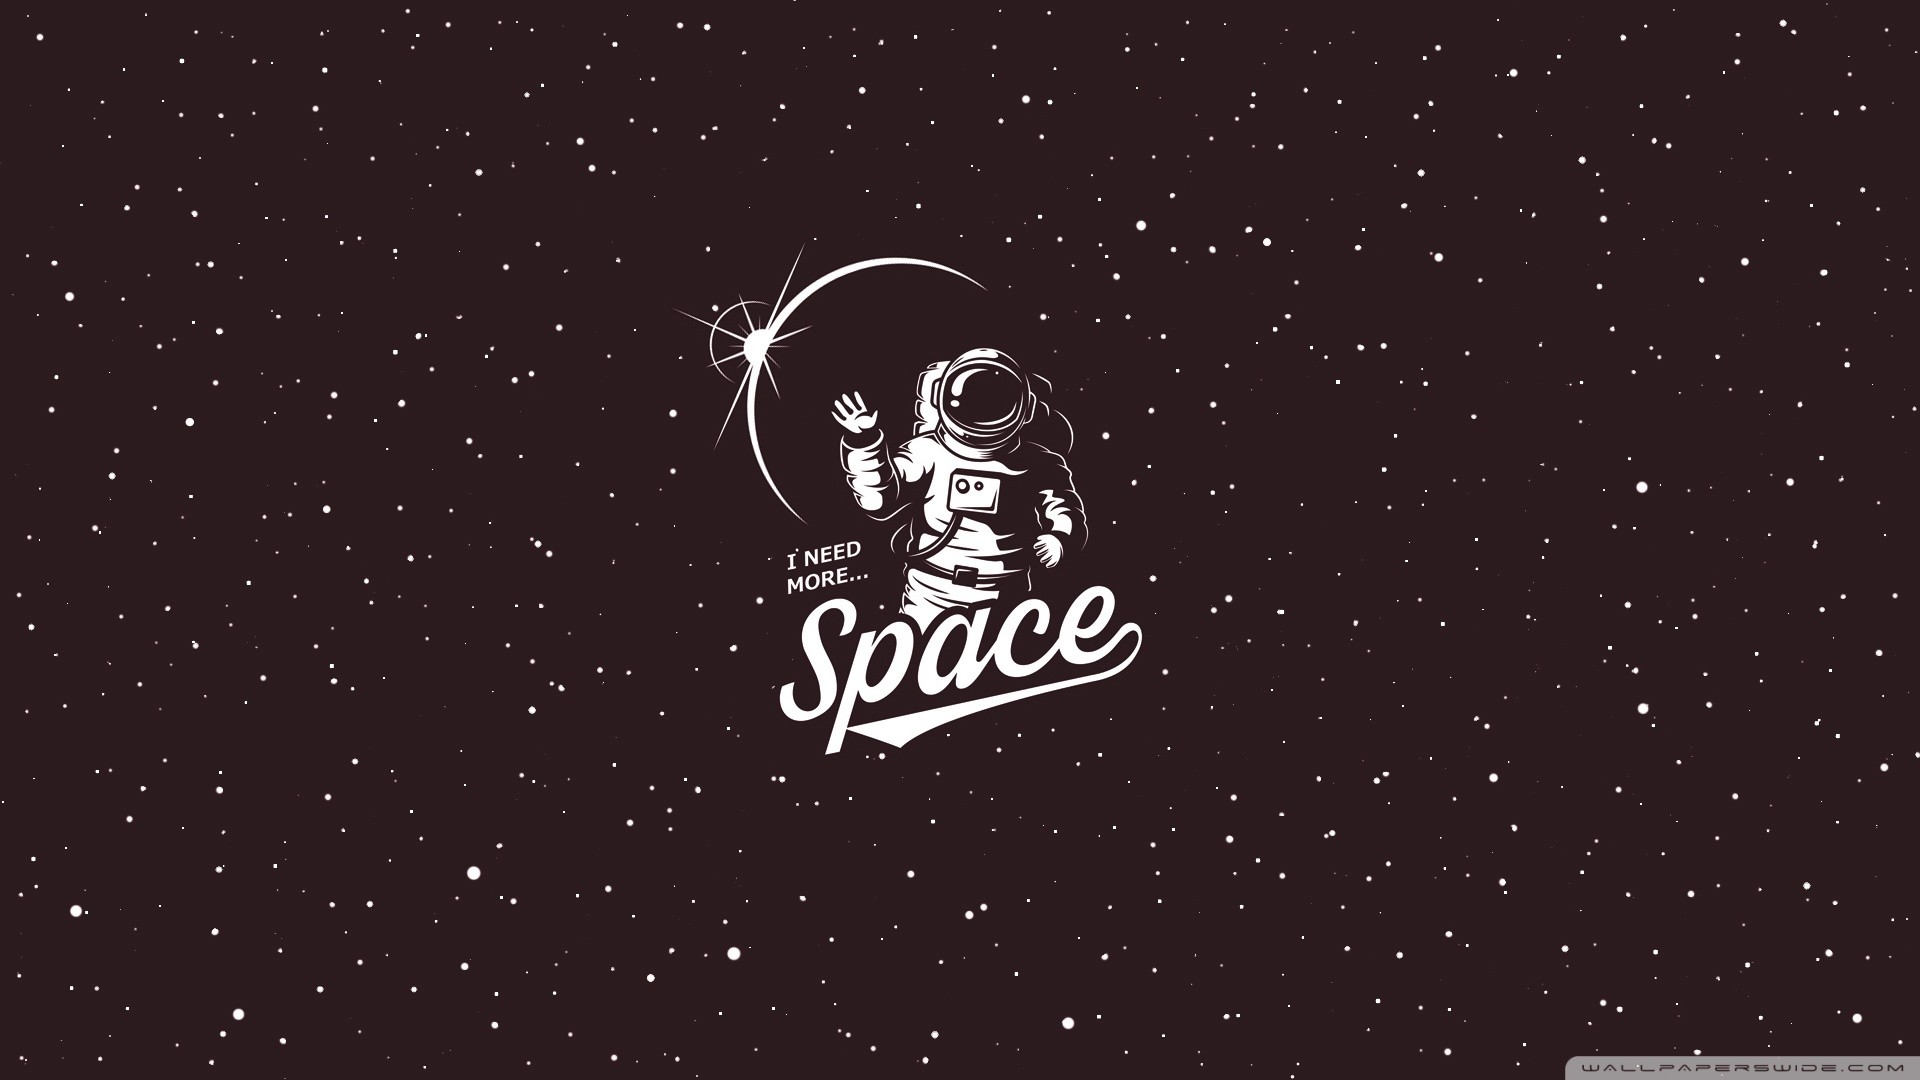 73 1366X768 Space Wallpapers on WallpaperPlay